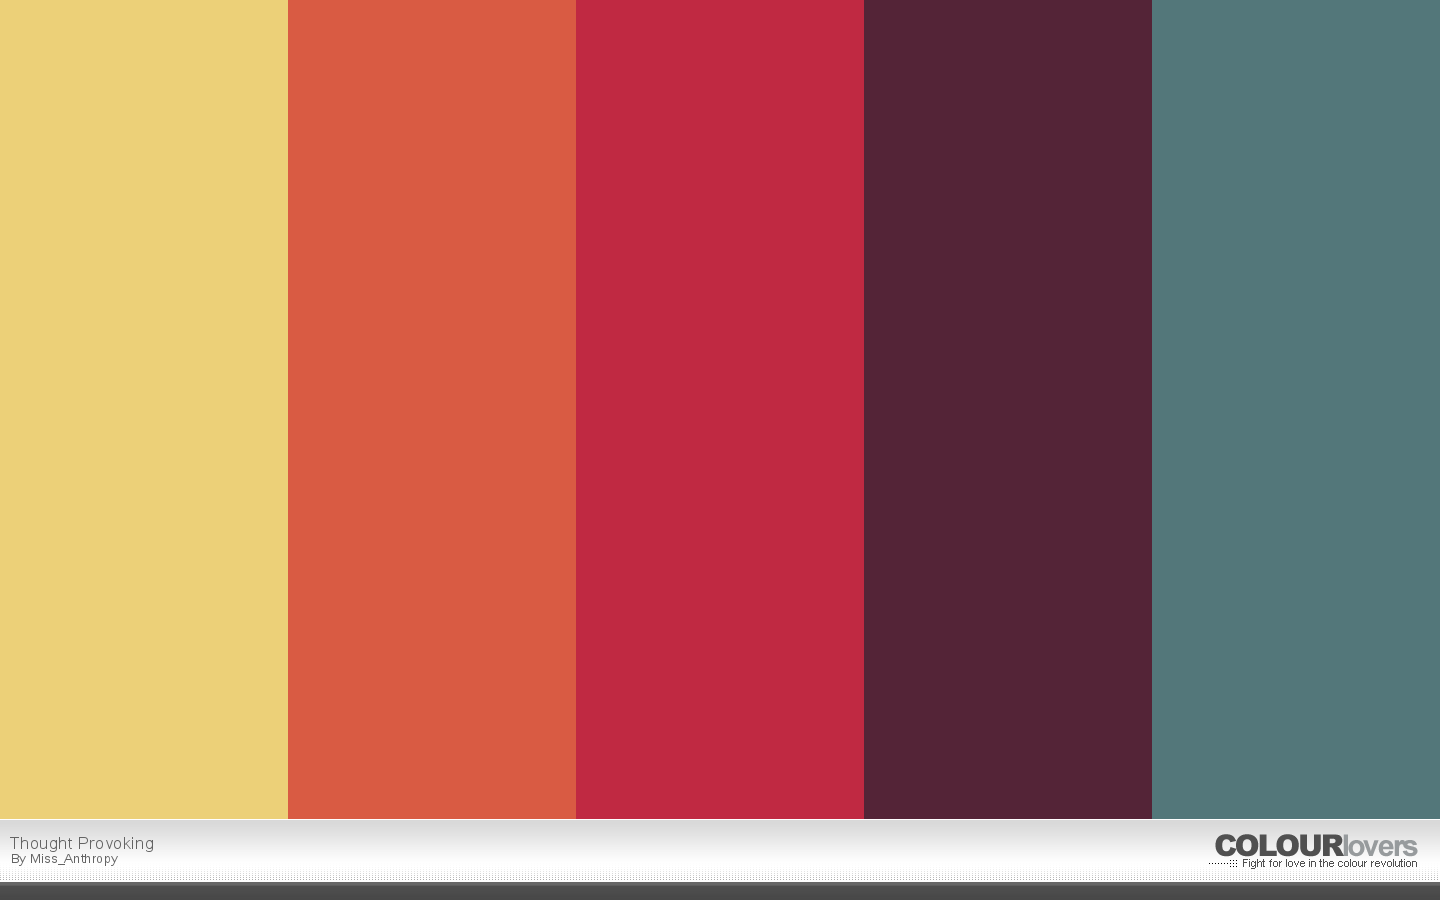 COLOURlovers.com-Thought_Provoking